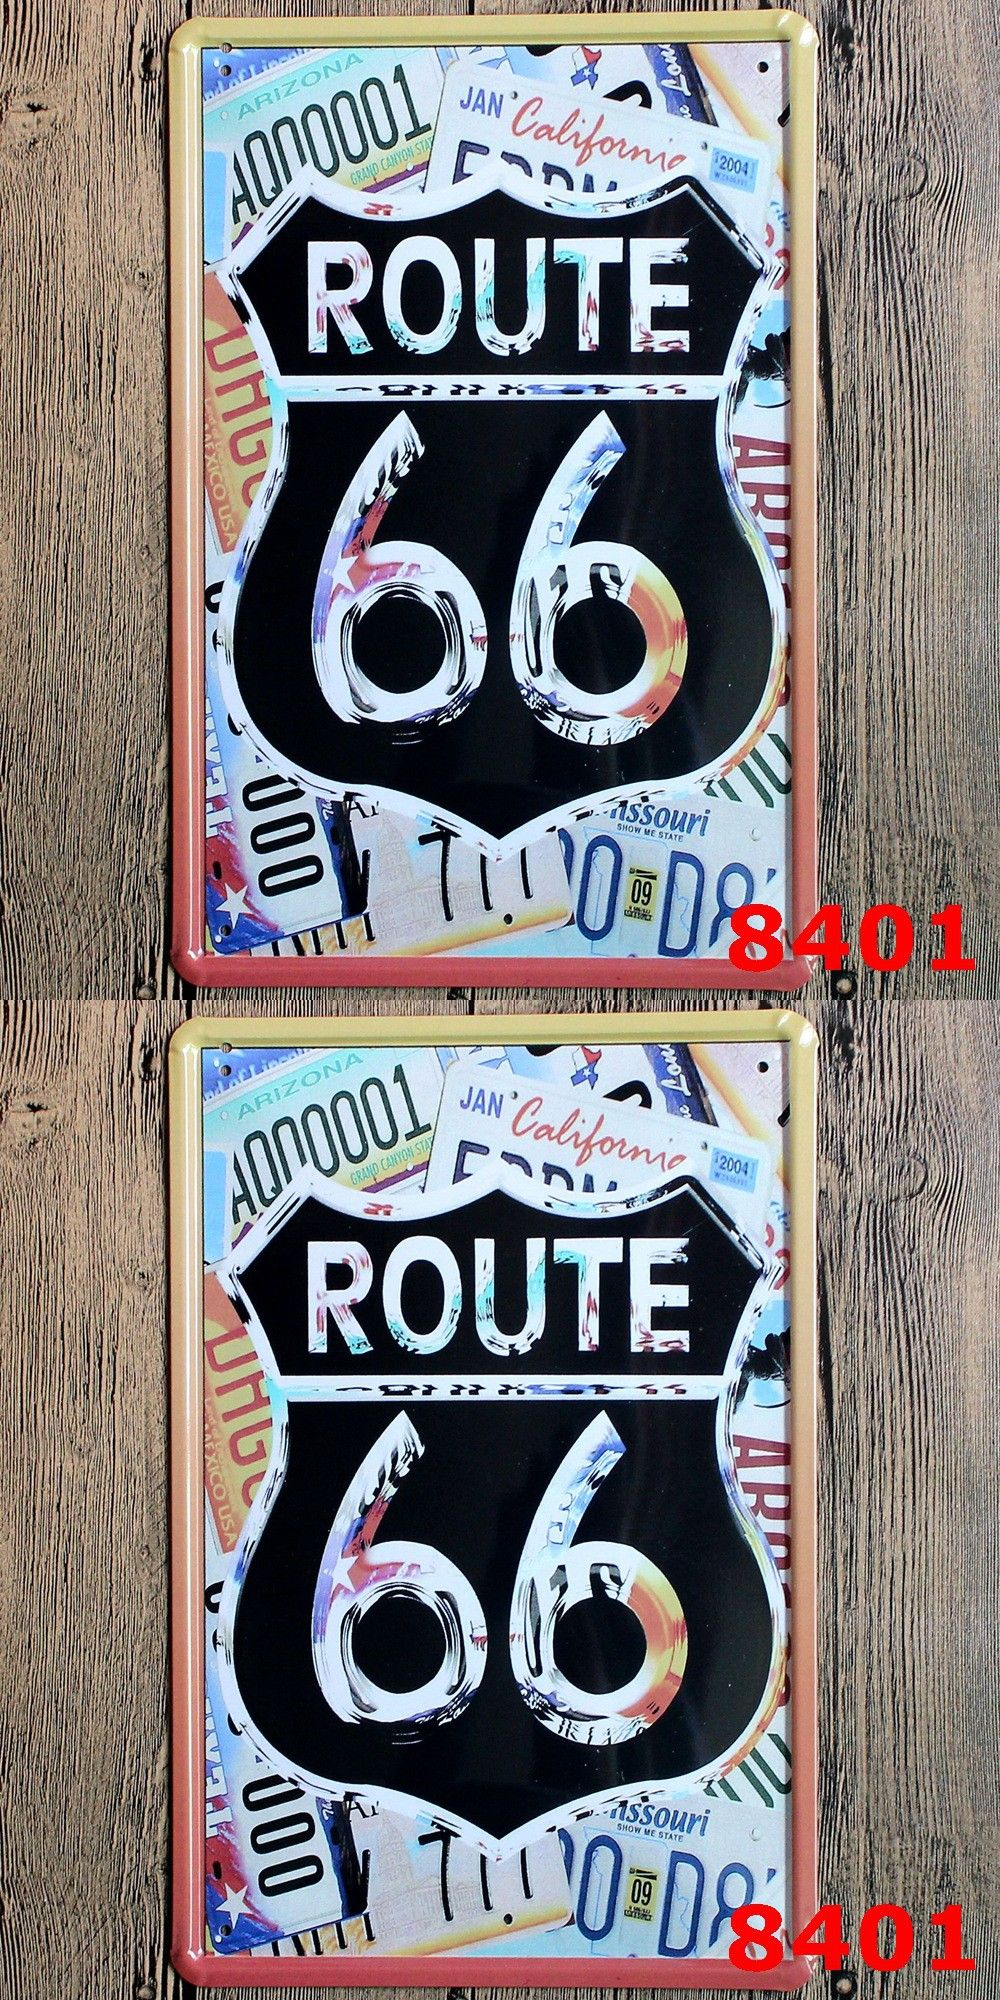 New Route US 66 Metal Wall Art Plaque Metal Vintage Pub Beer Poster Vintage Metal  Signs Home Decor Ruta 66 20*30 CM